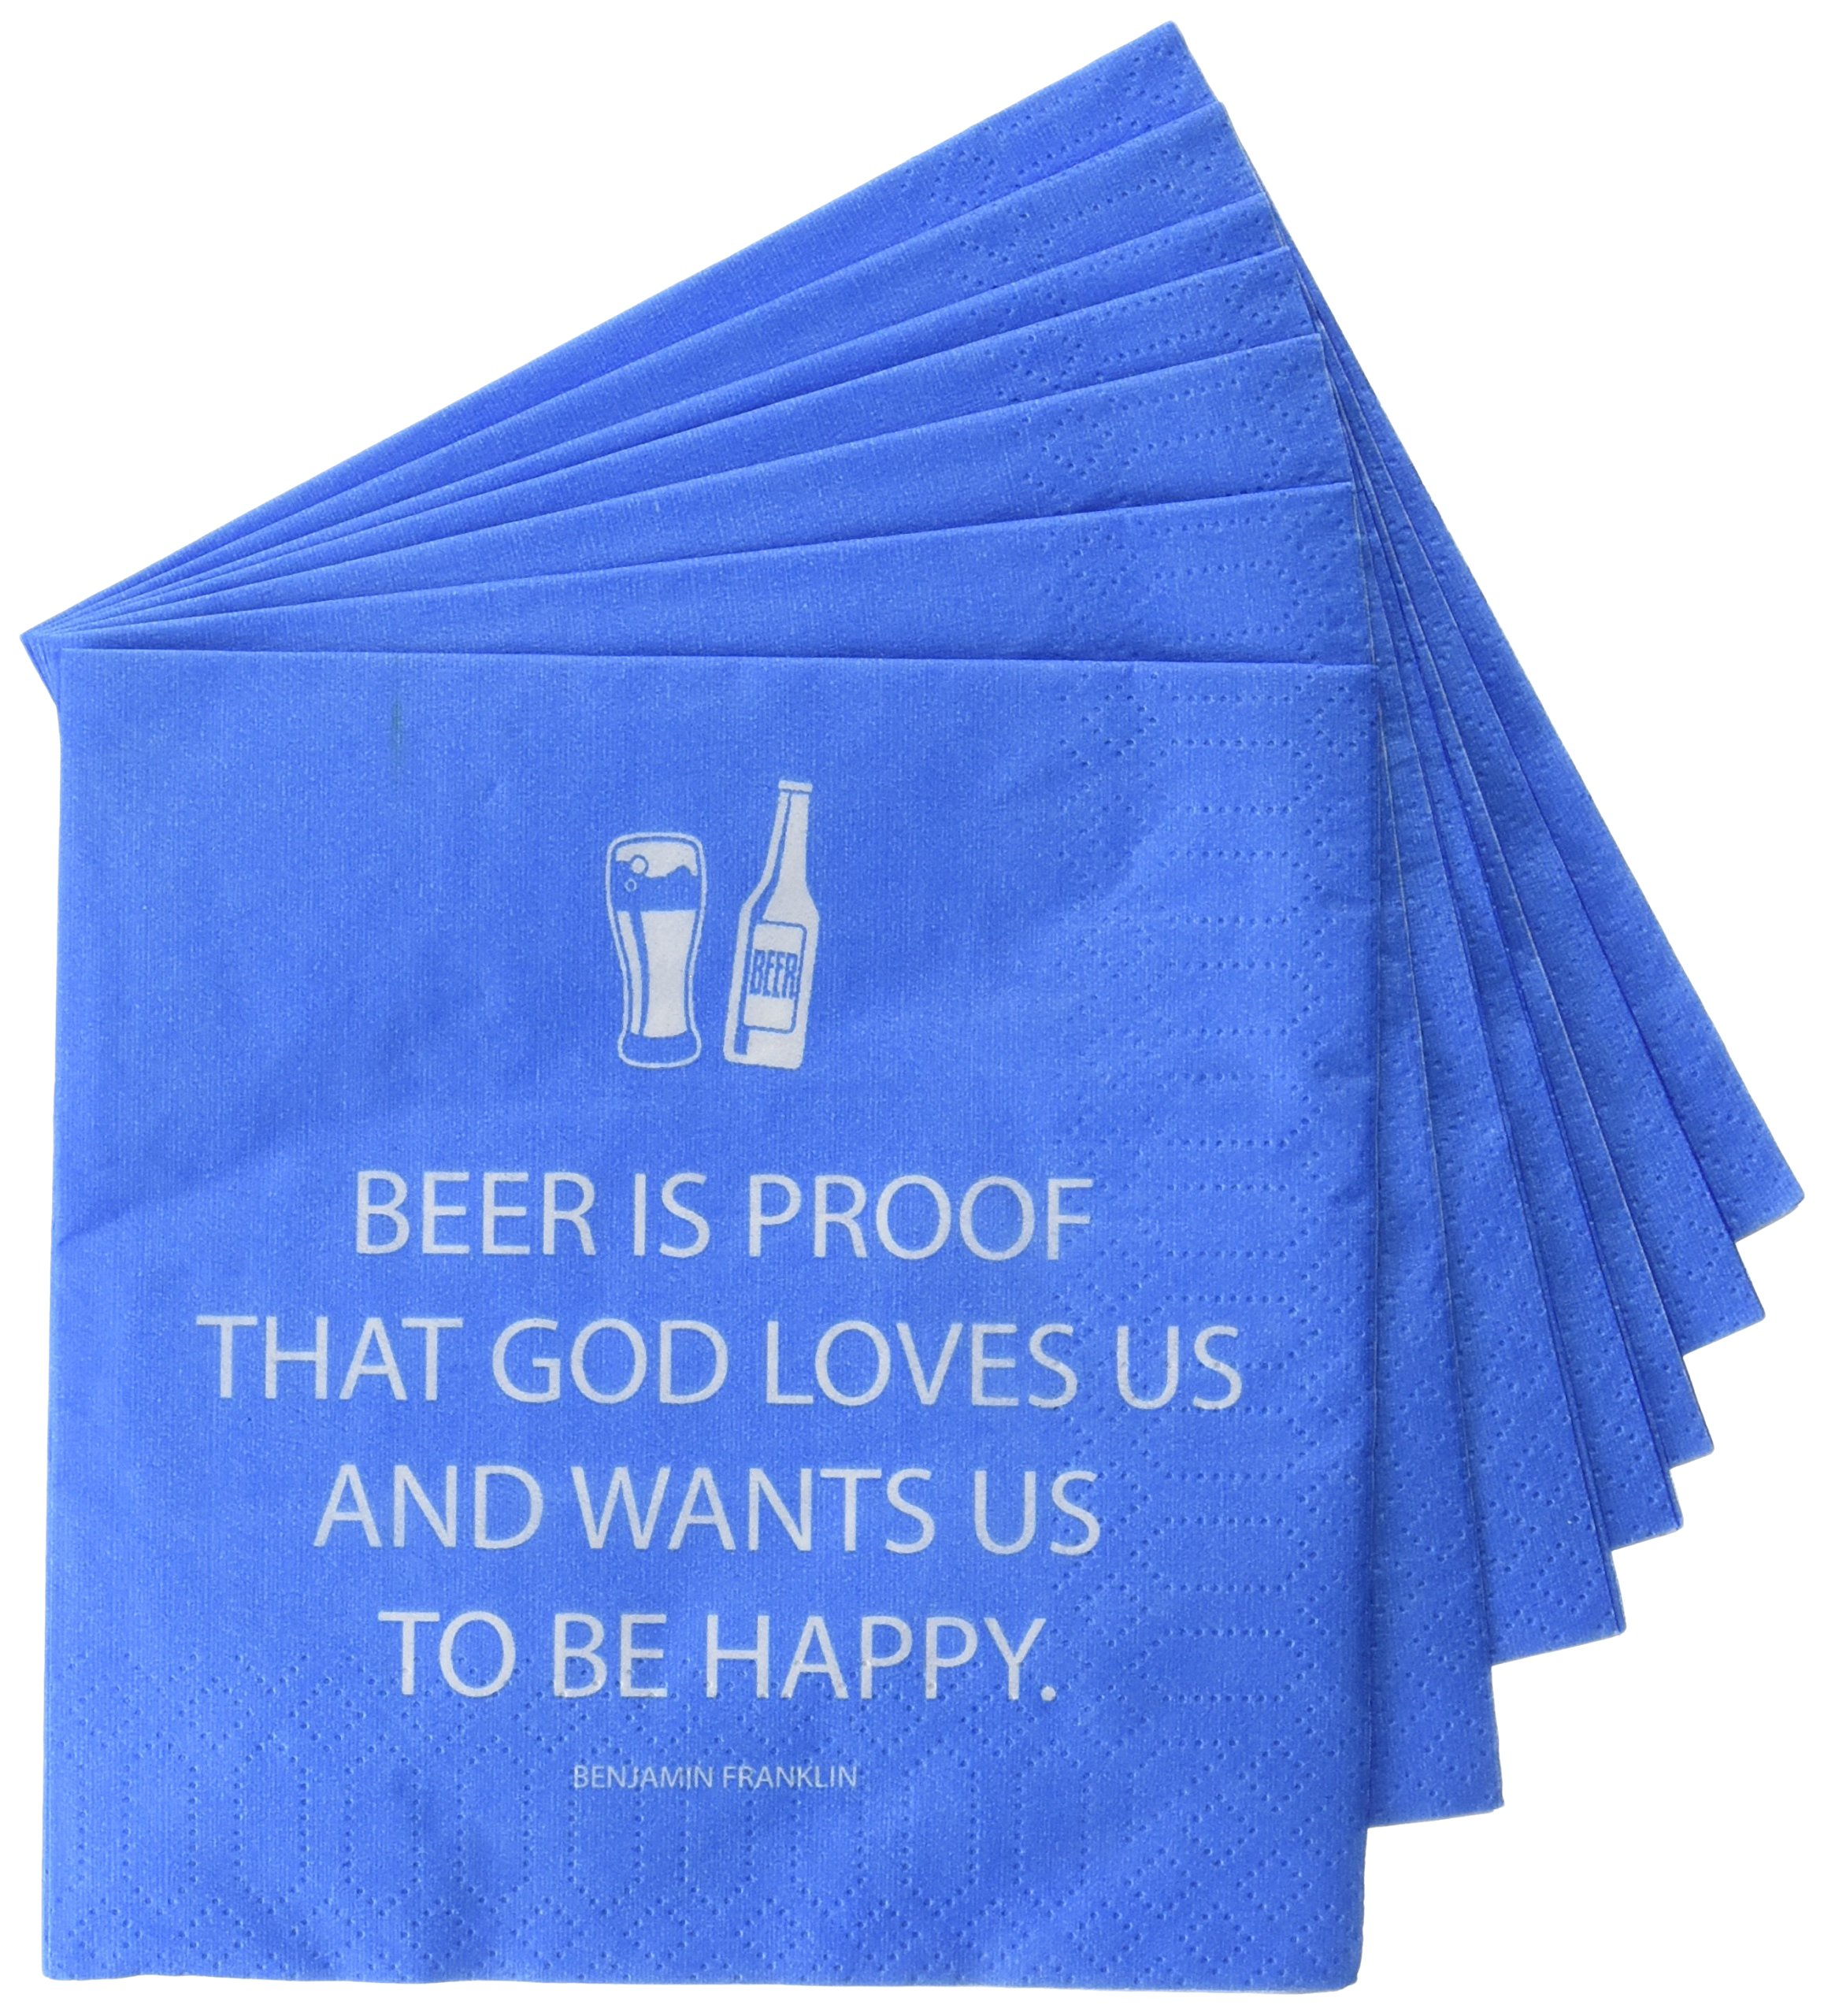 Paperproducts Design Paper Napkins (20 Pack), Beer is Proof That God Loves Us, Multicolor by Paperproducts Design (Image #1)